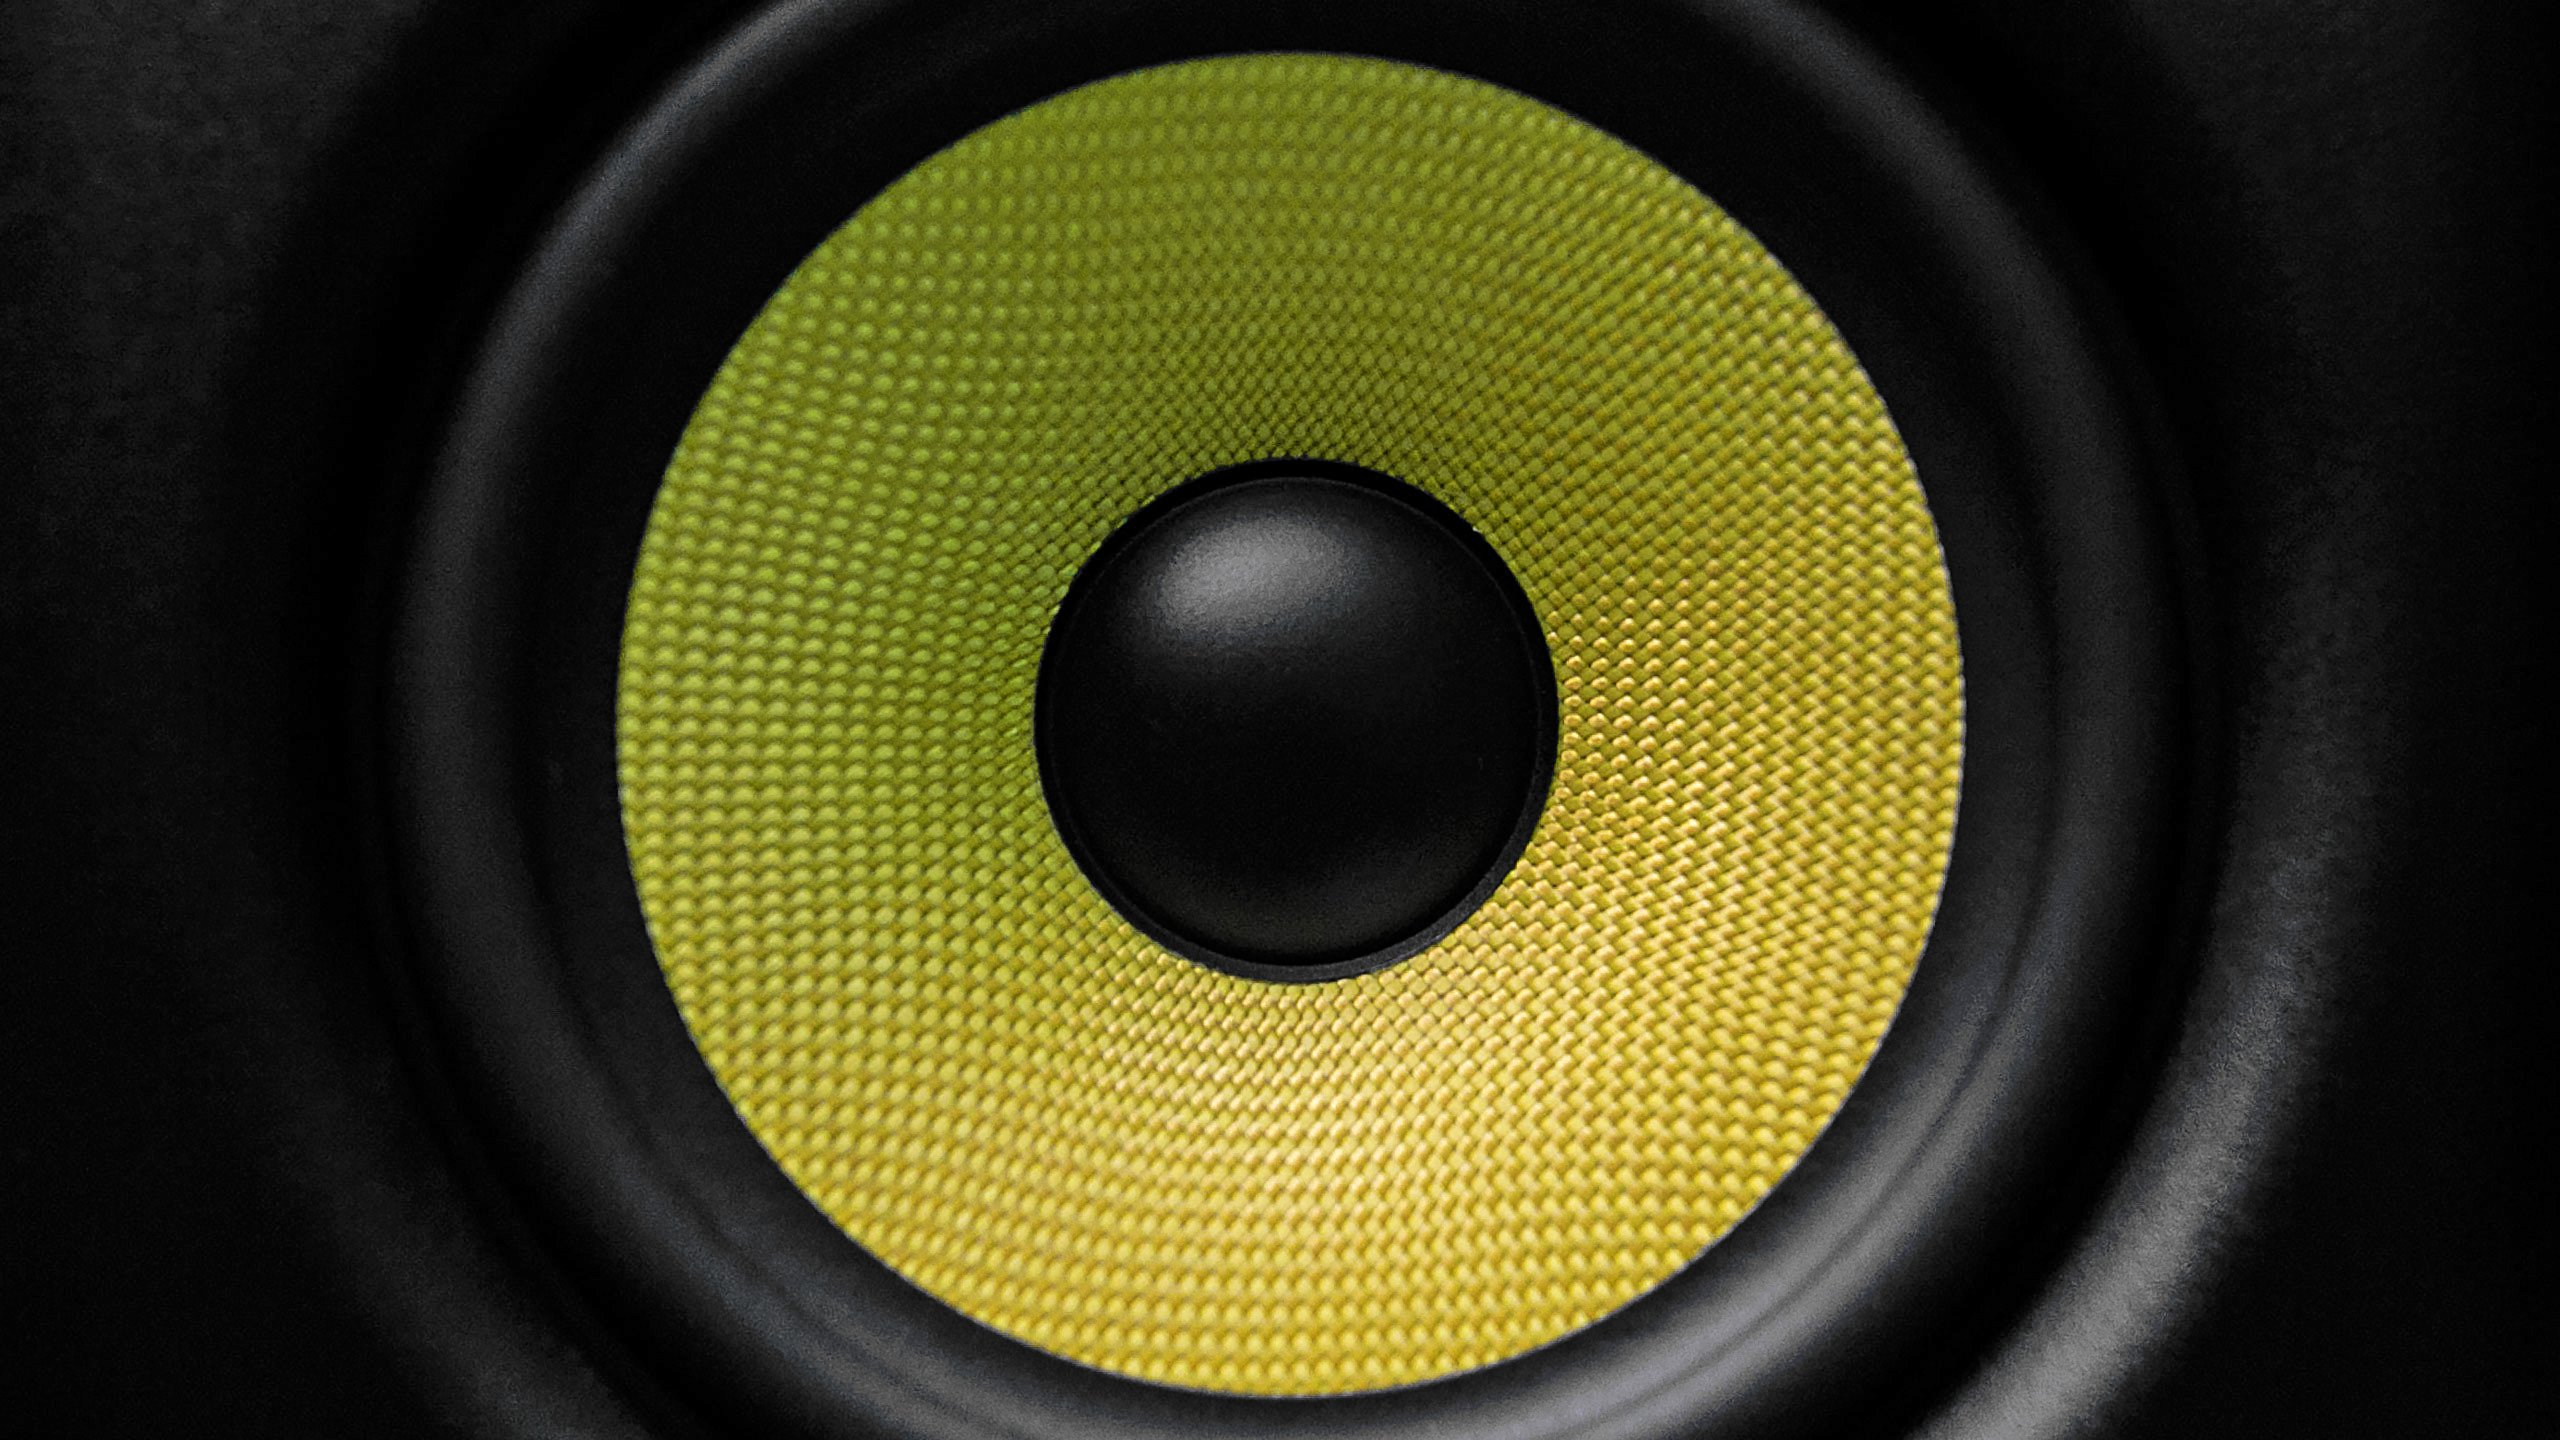 KRK Rokit G4 RP7 10S speaker monitor review DJ DJWORX (6)